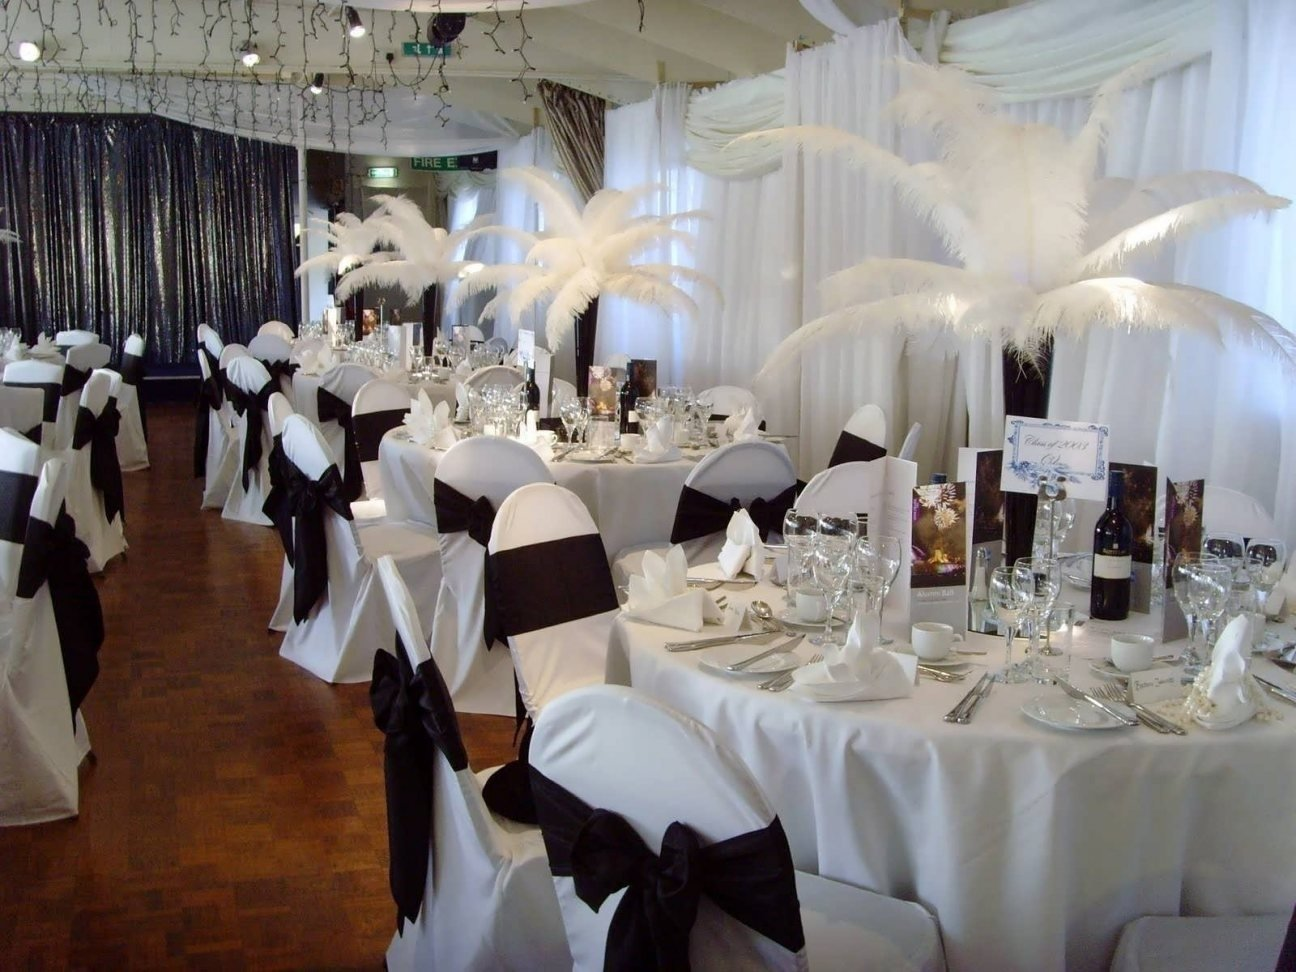 10 Nice 10 Year Wedding Anniversary Party Ideas 10 year wedding anniversary decorations reception decoration ideas